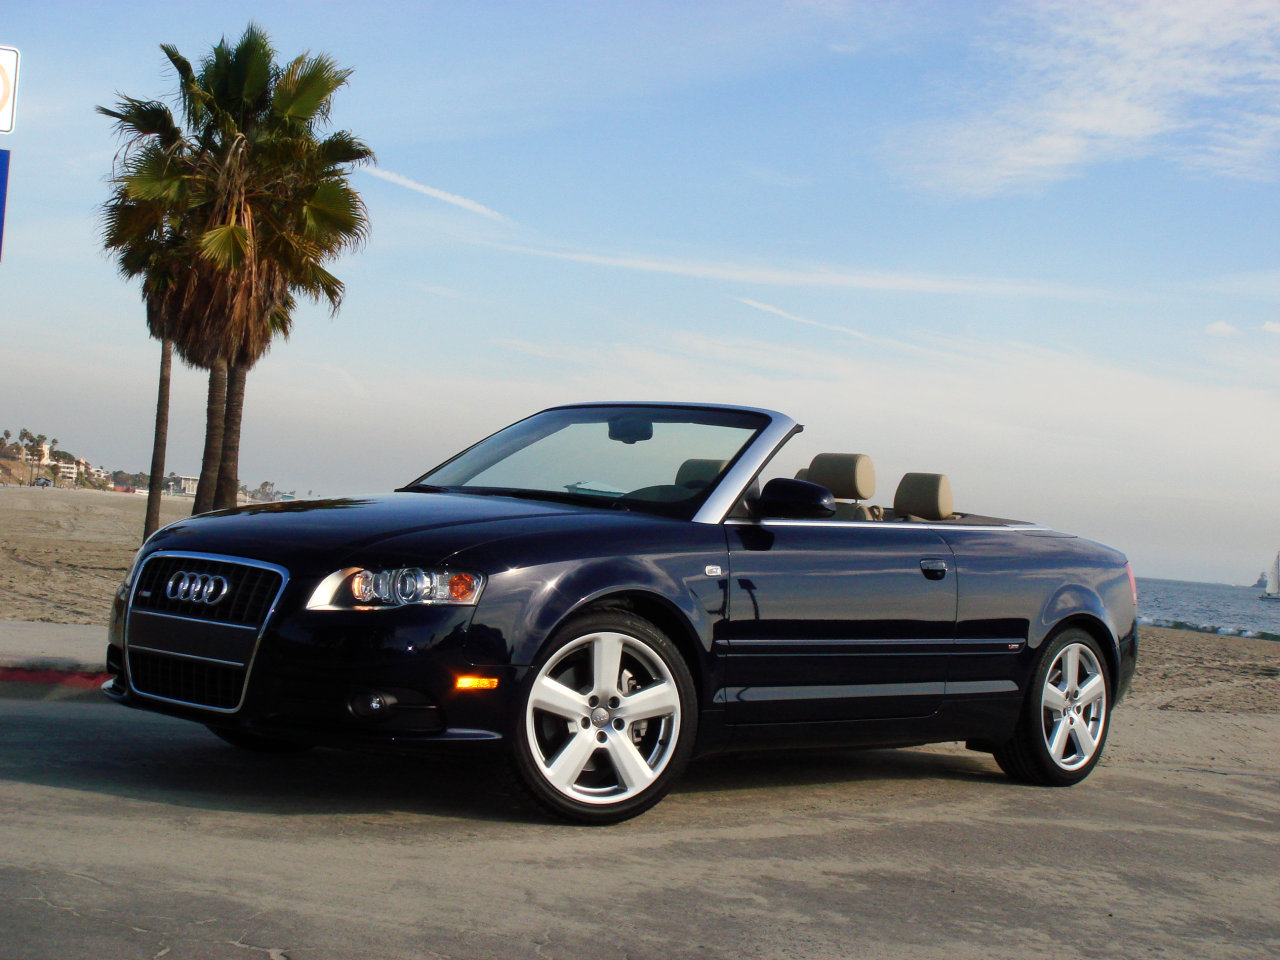 audi a4 cabriolet technical details history photos on better parts ltd. Black Bedroom Furniture Sets. Home Design Ideas